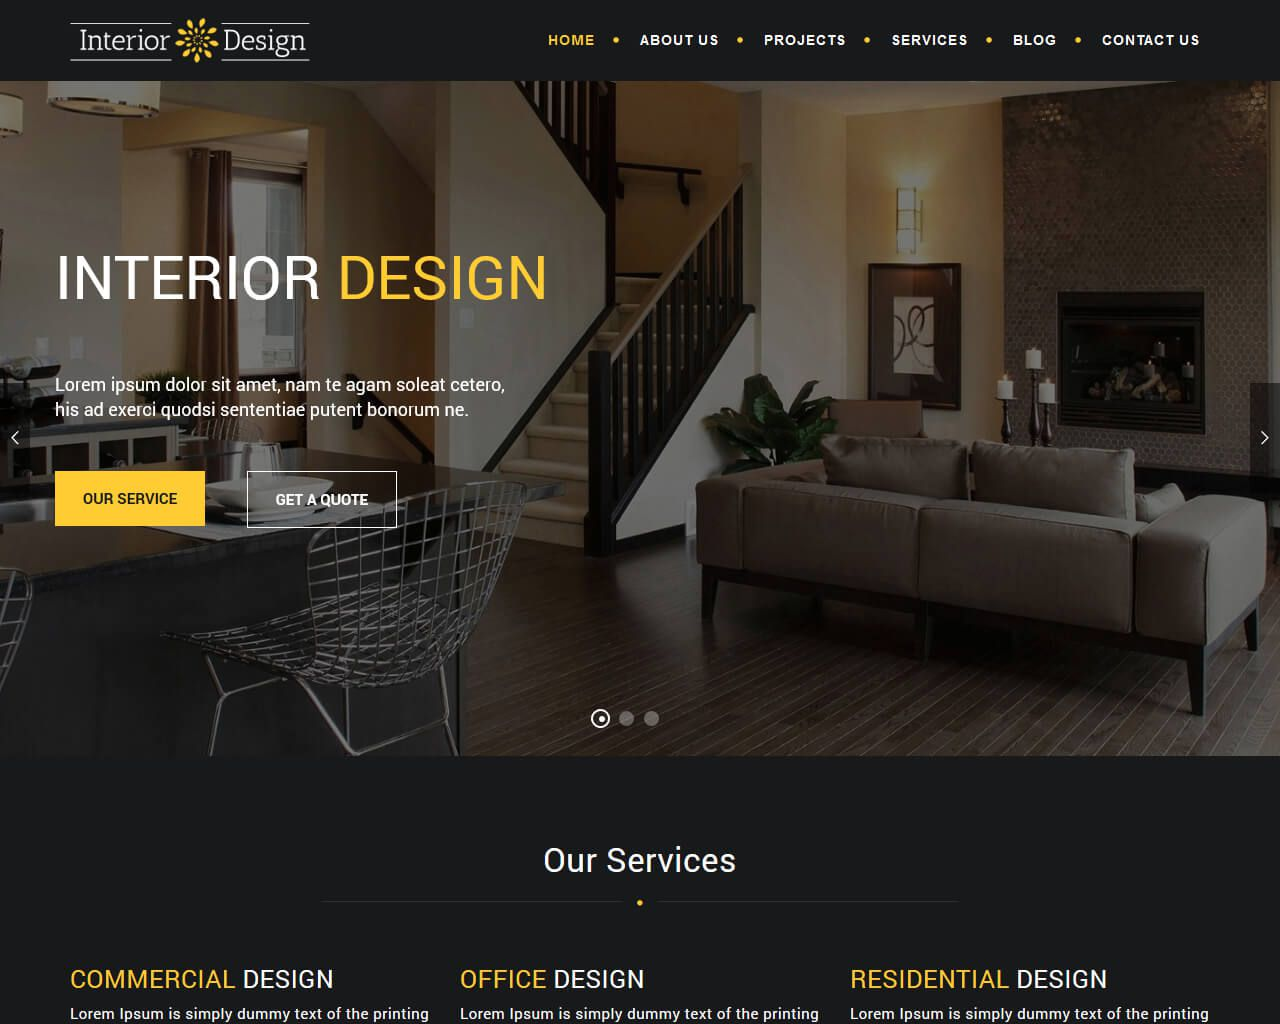 010 Stirring Interior Design Website Template Photo  Templates Company Free Download HtmlFull